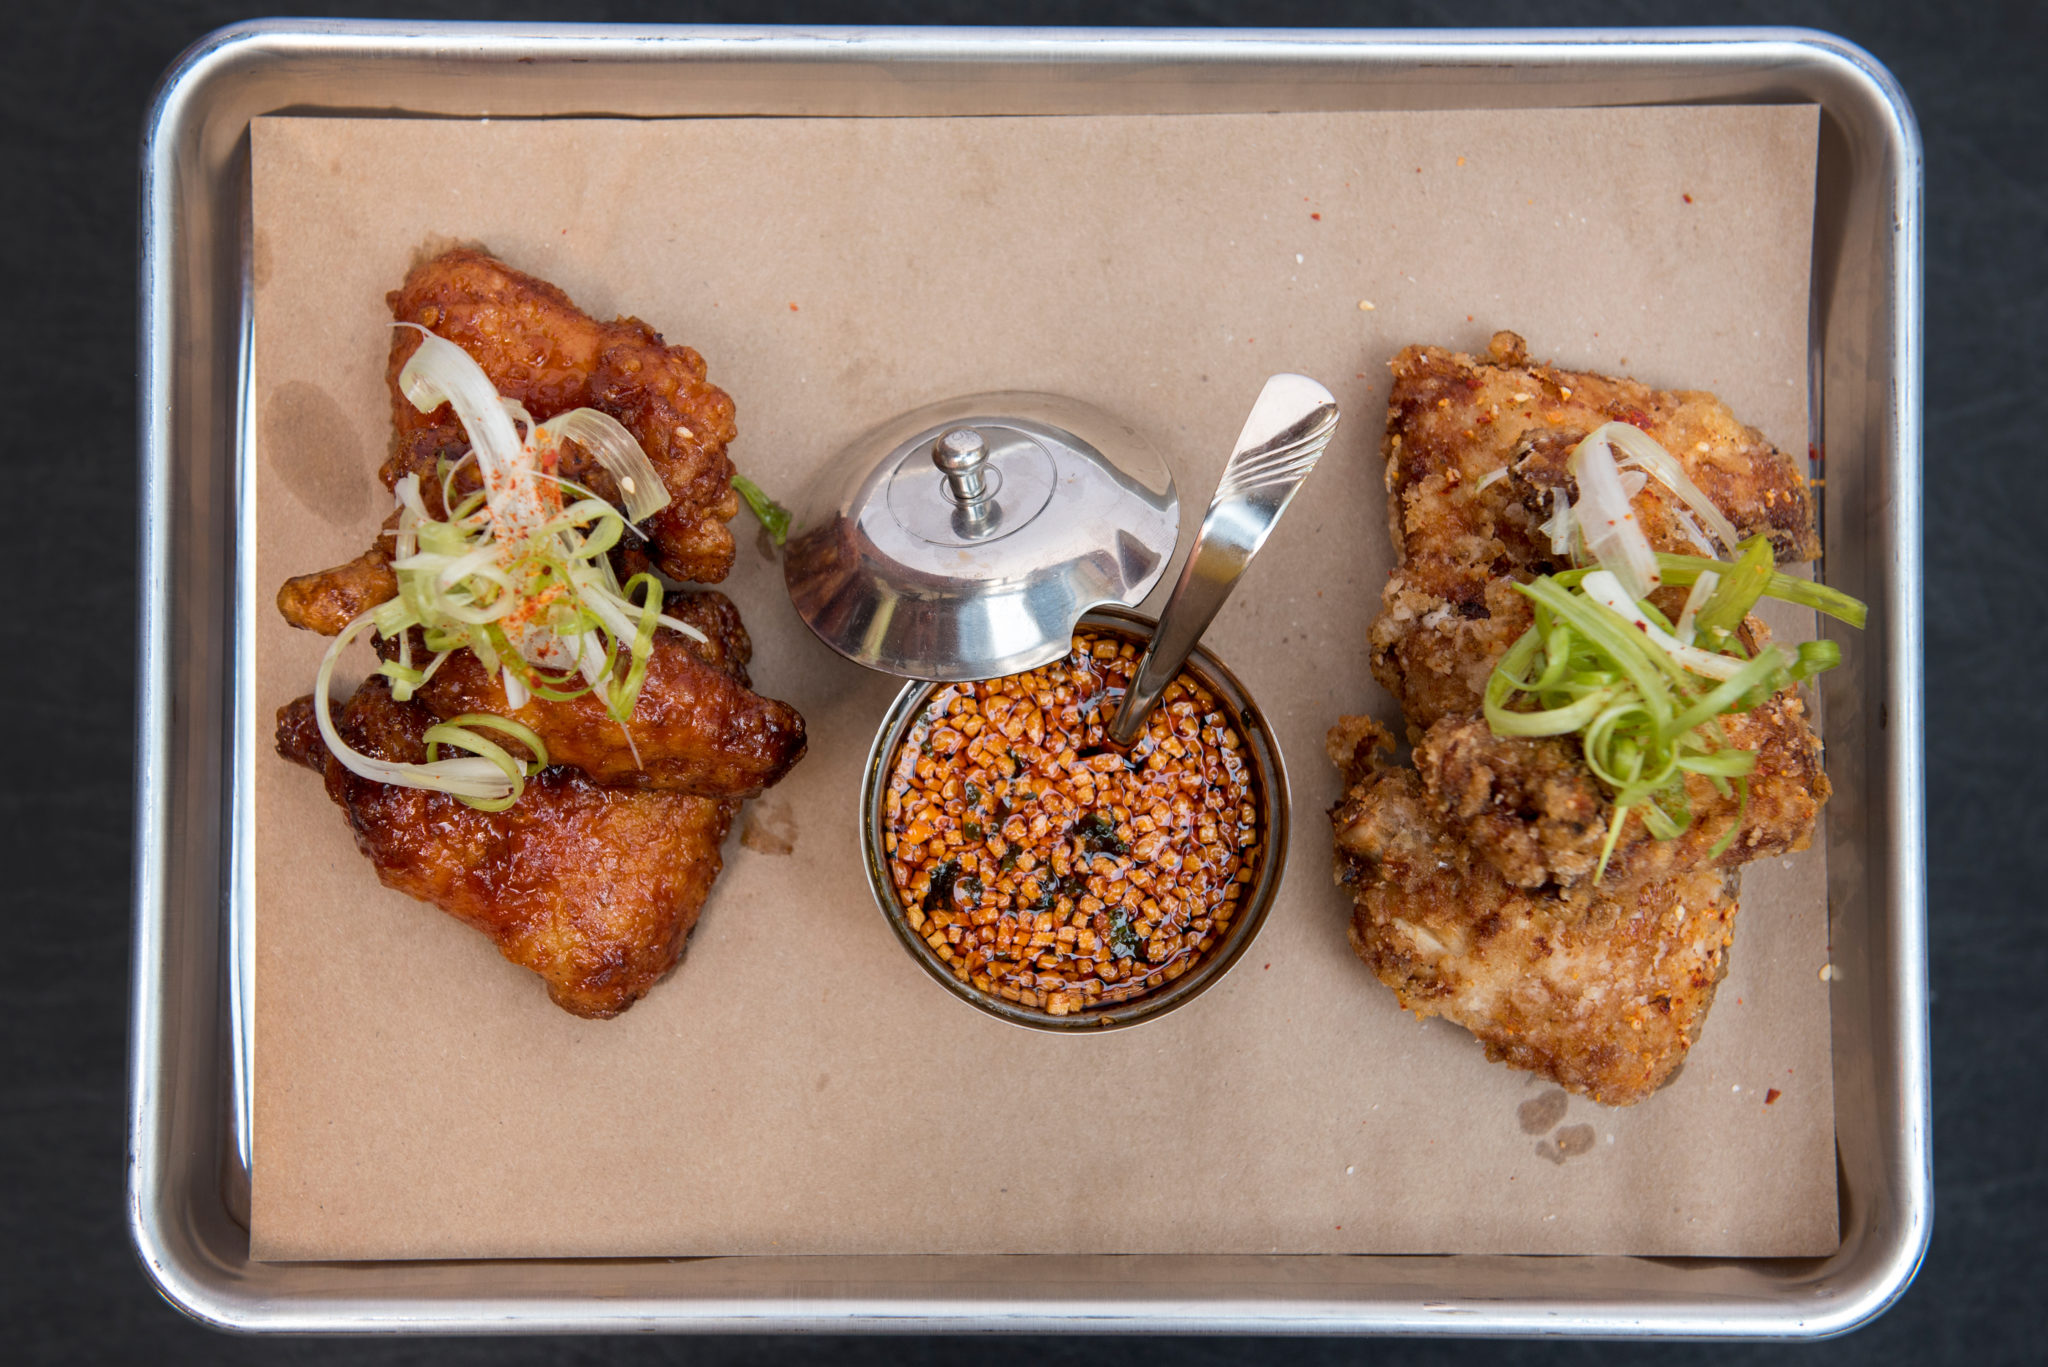 <p>CHIKO</p><p>The modern Chinese and Korean restaurant near Eastern Market overseen by chefs Danny Lee and Scott Drewno offers double-fried chicken wings ($9). Available either in spicy soy glazed or dry-spiced versions, they are great paired with an order of Sichuan spicy cucumbers ($3). (Image: CHIKO)</p>